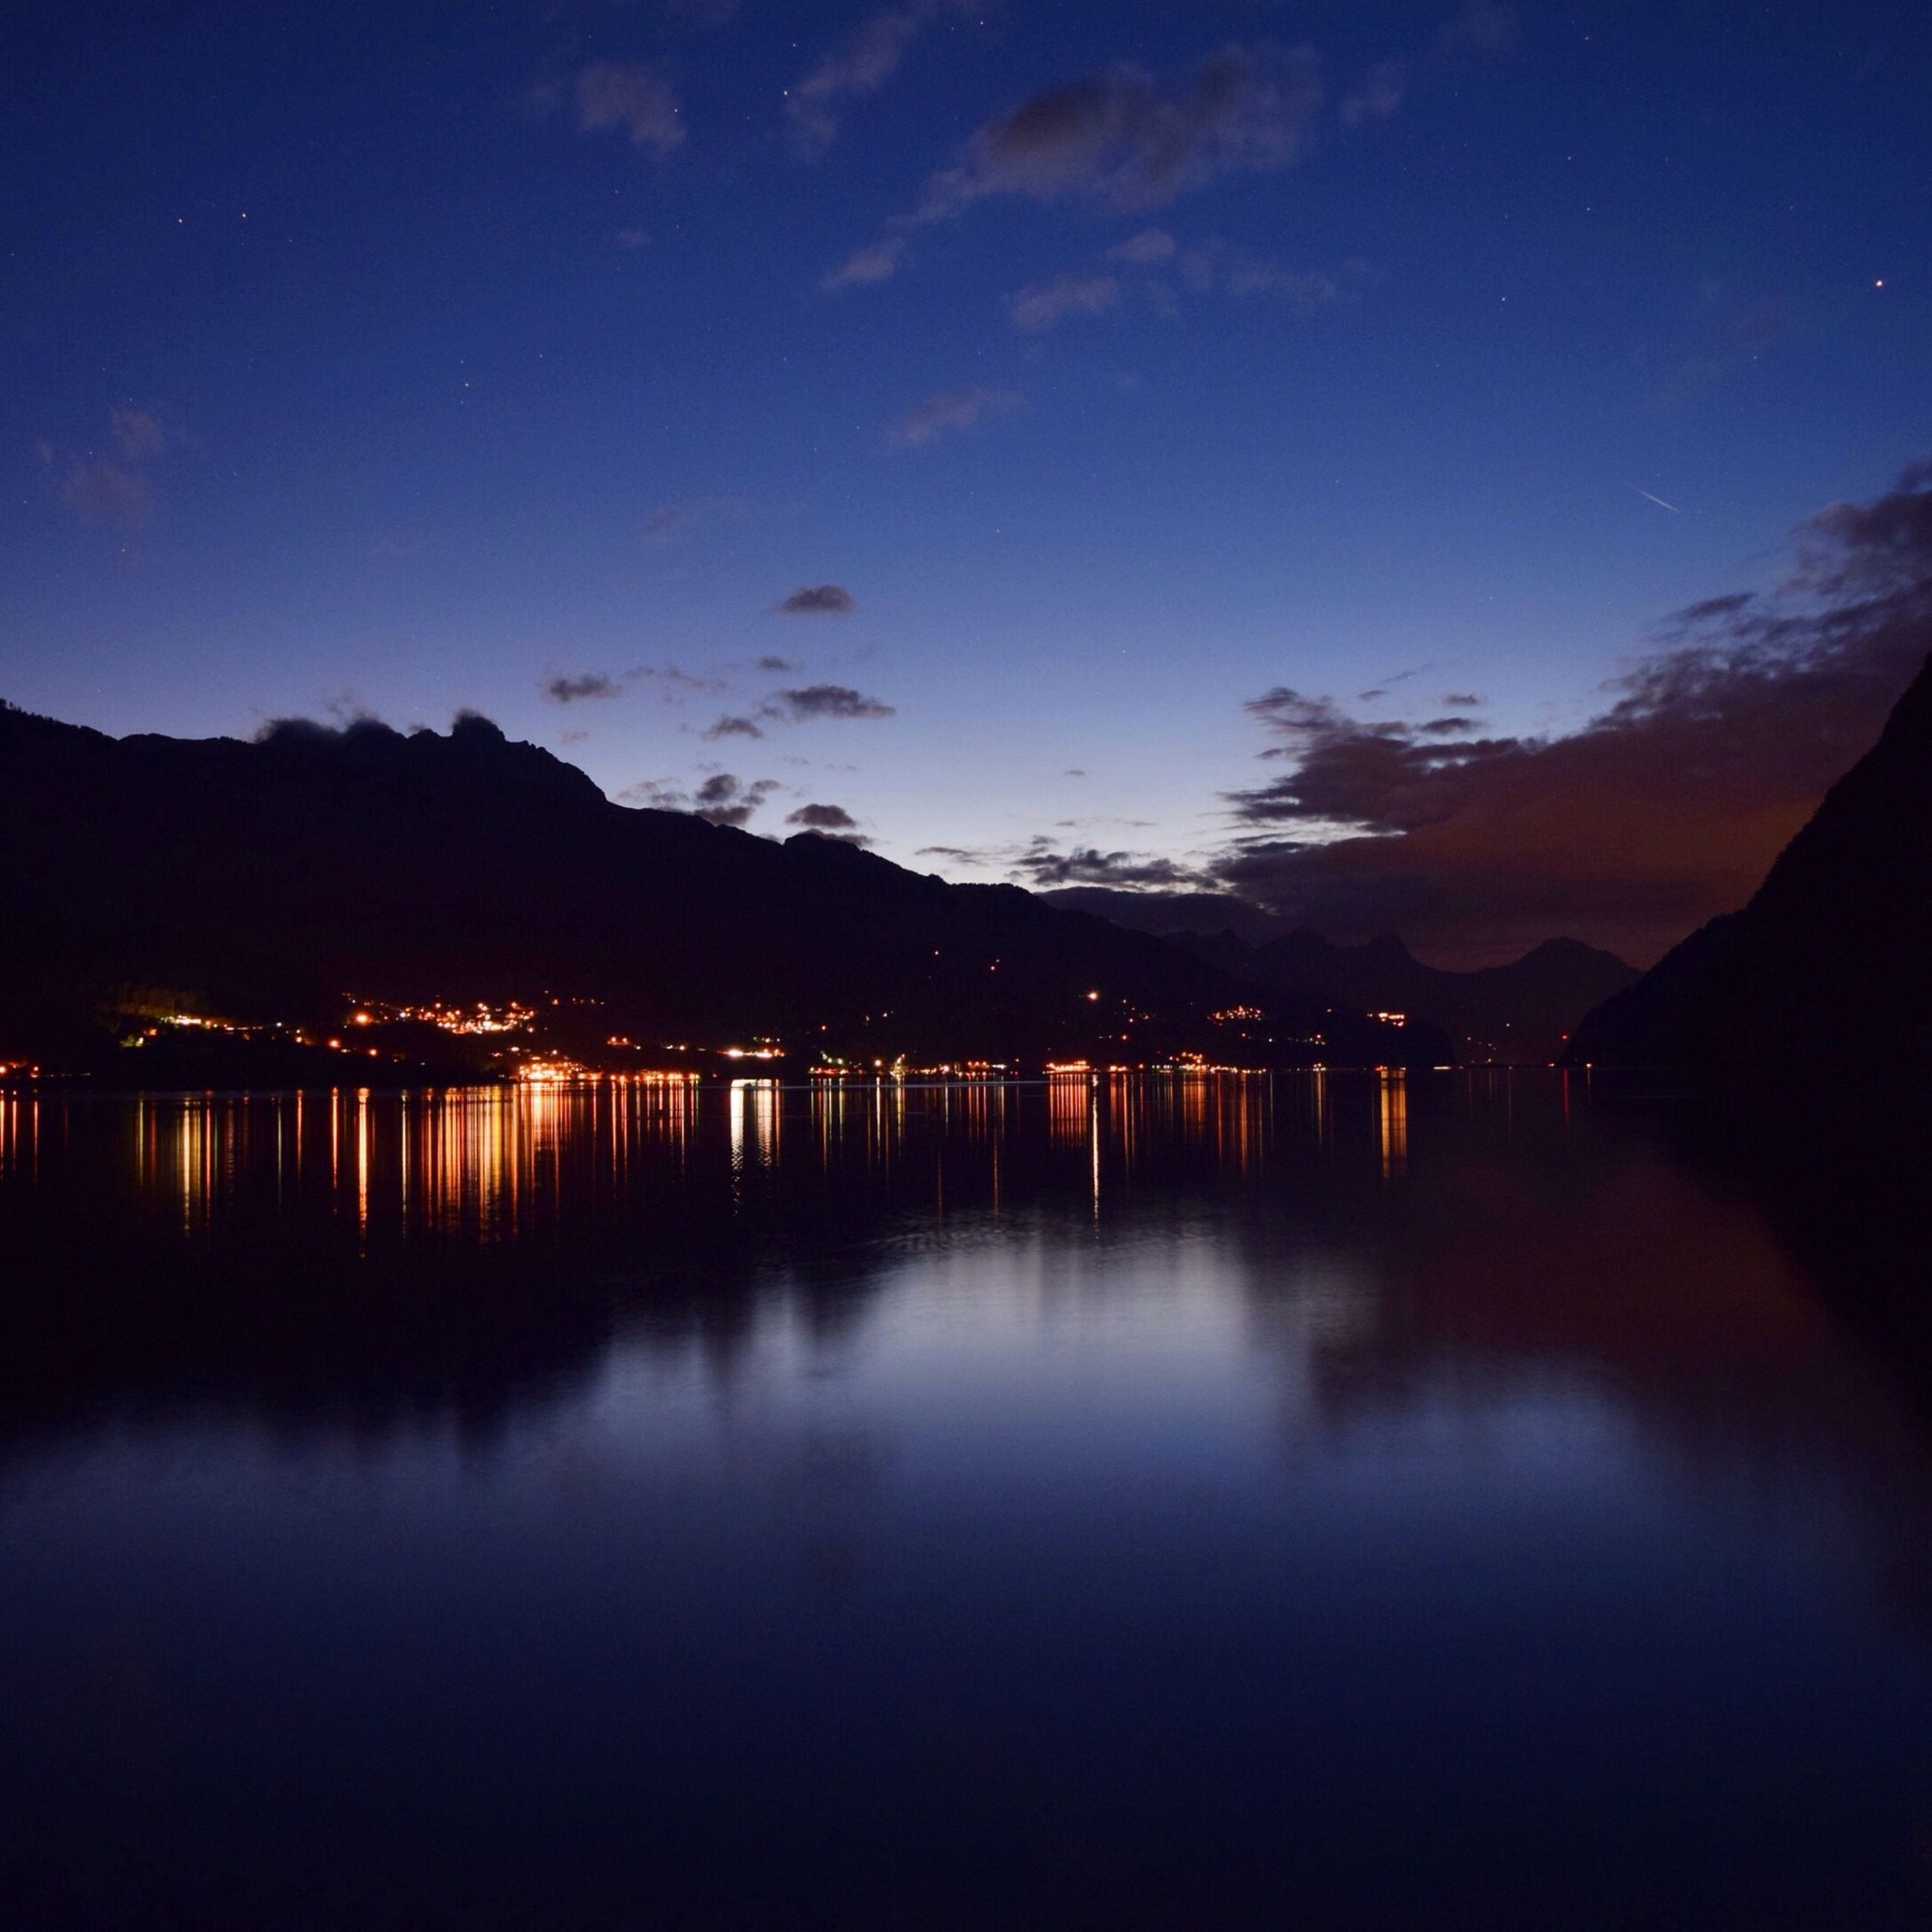 reflection, water, illuminated, tranquil scene, tranquility, lake, sky, waterfront, night, scenics, beauty in nature, dusk, mountain, built structure, silhouette, nature, idyllic, standing water, sunset, architecture